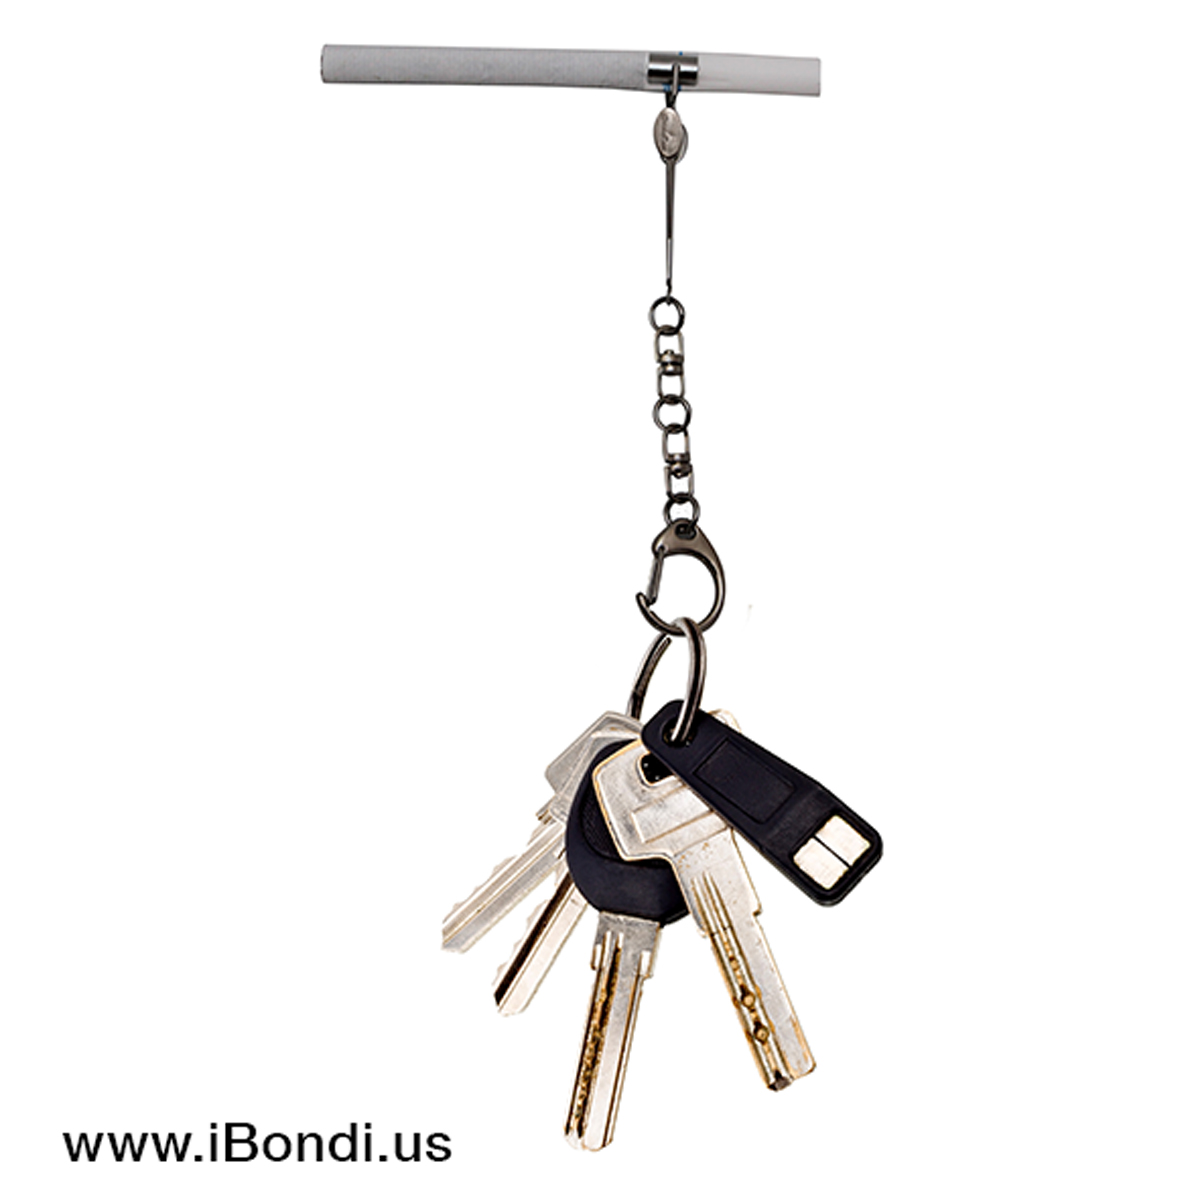 Smokease key holder with keys